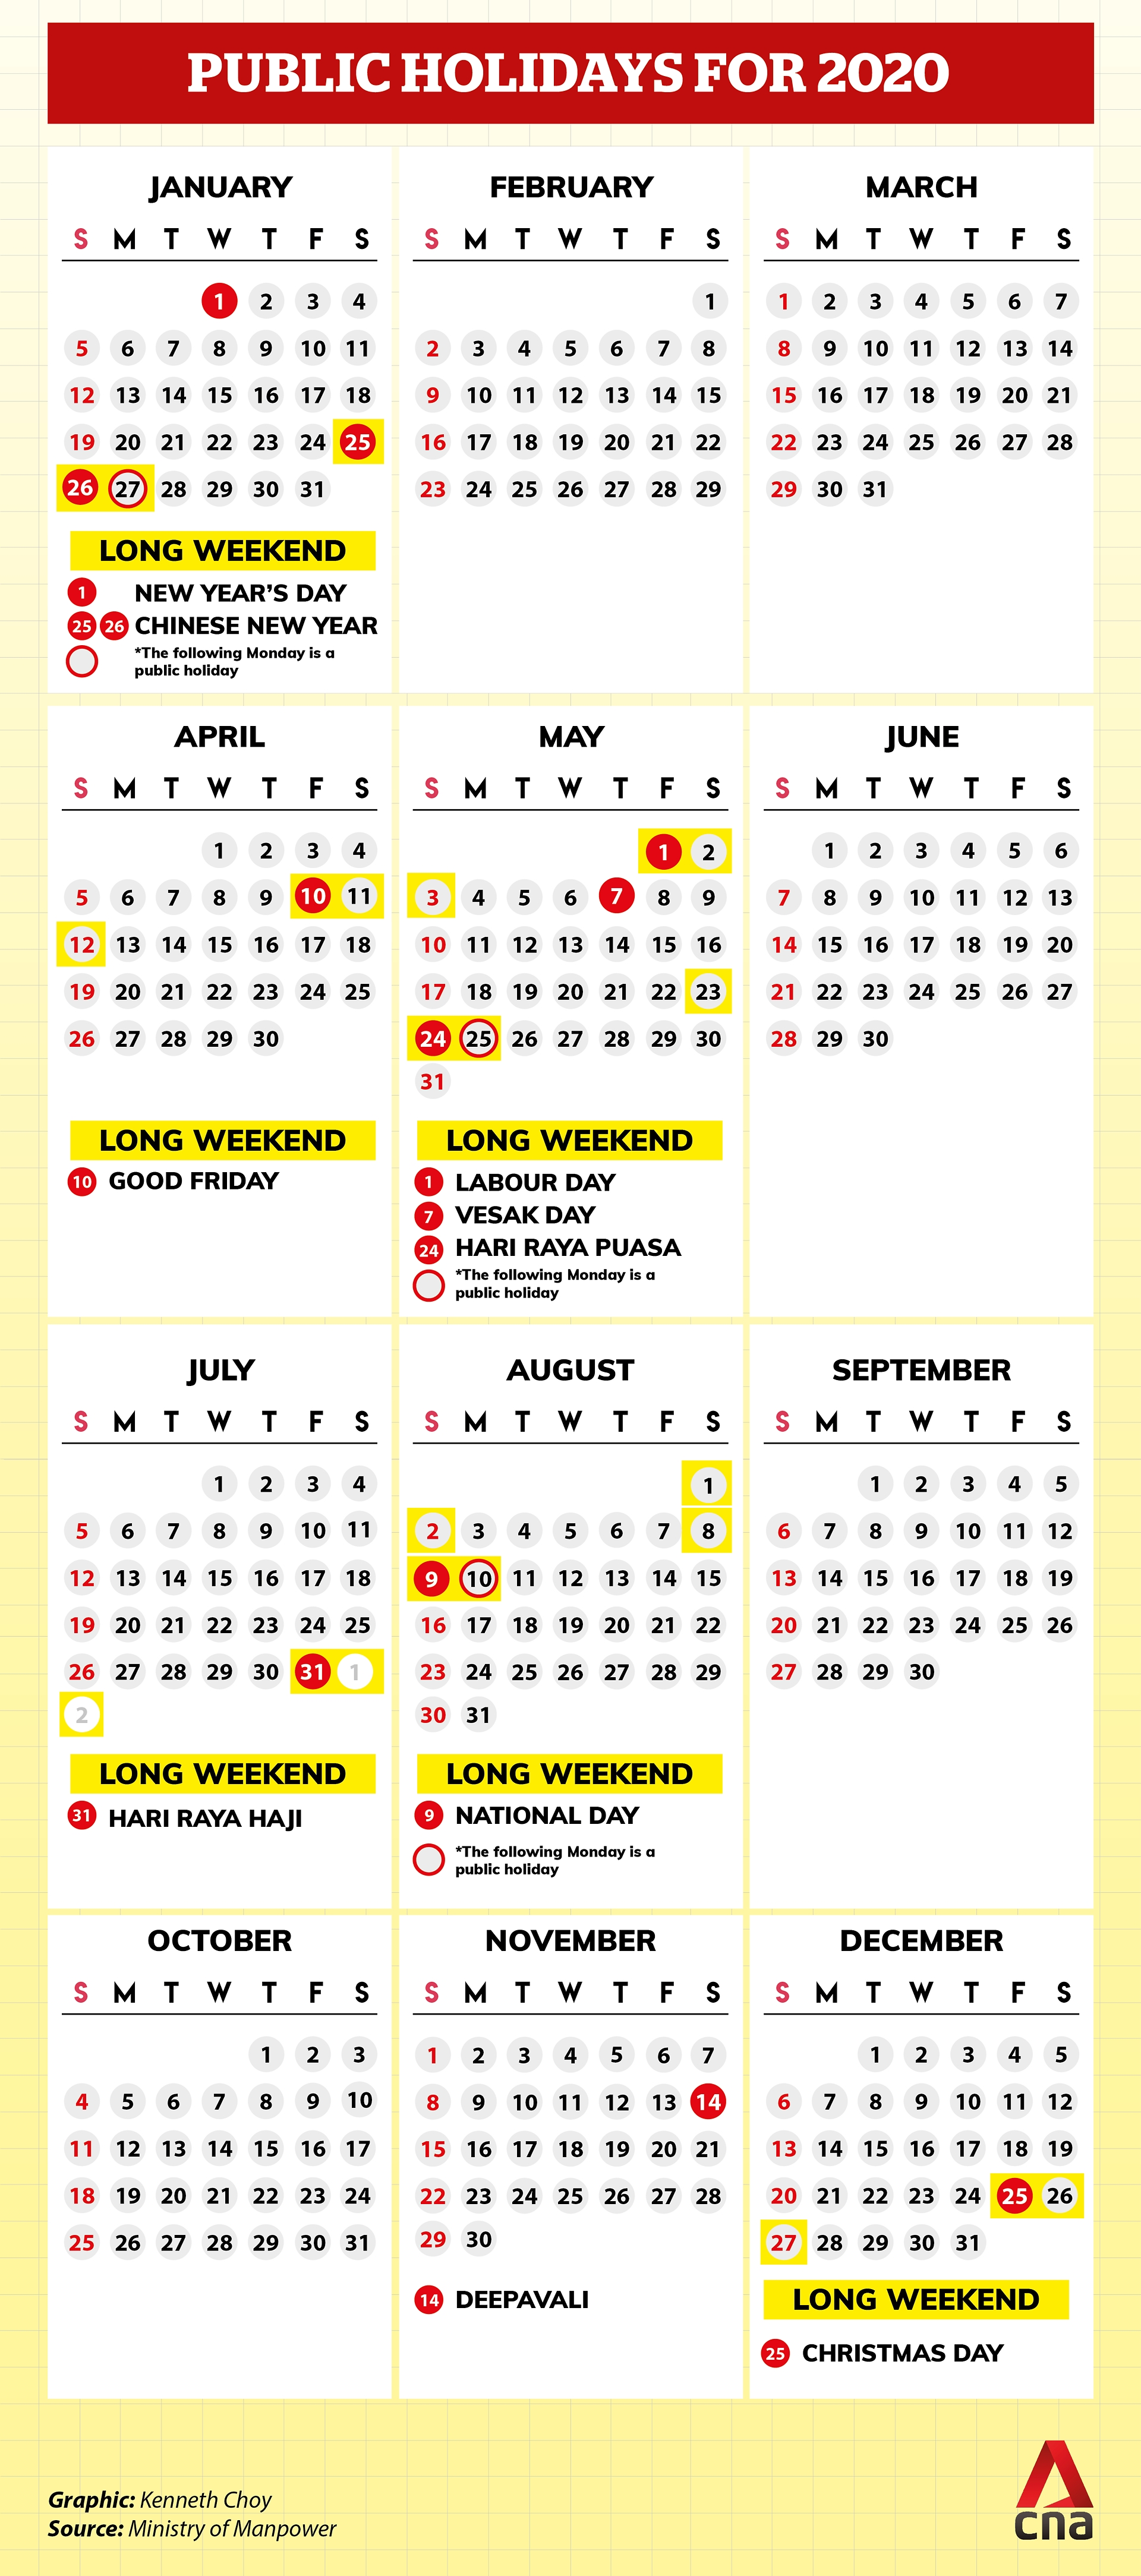 Singapore To Have 7 Long Weekends In 2020 - Cna-2020 Calendar With Public Holidays